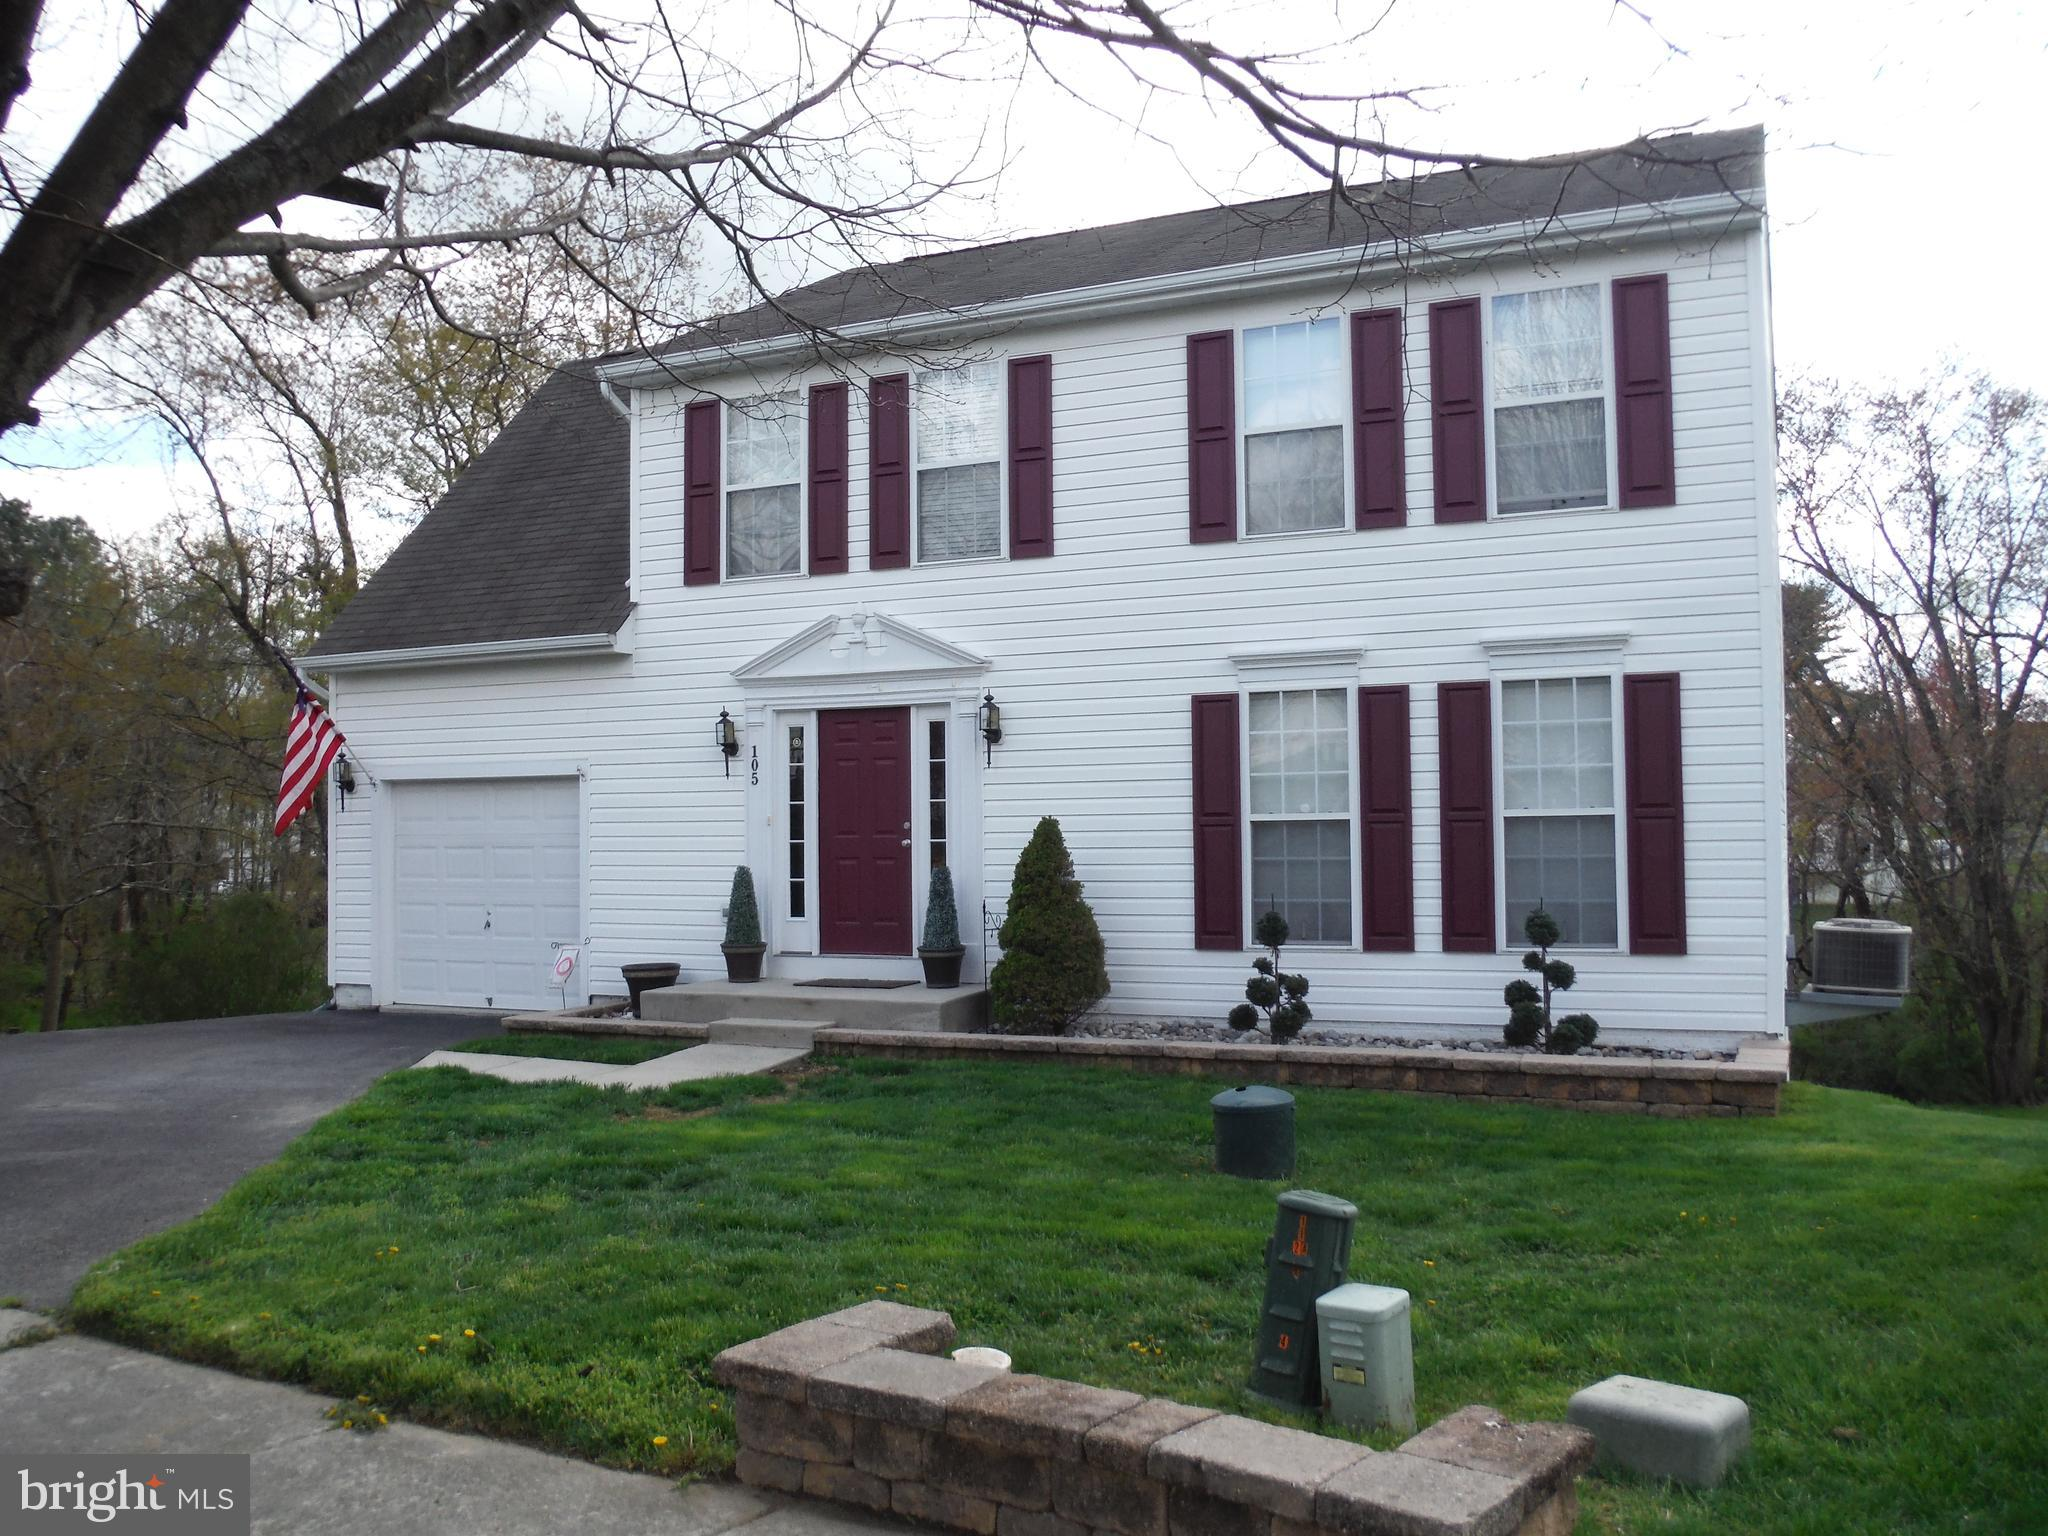 BACK ON MARKET! LIST PRICE HAS BEEN APPROVED BY THE LENDER! QUICK APPORVAL! NEED TO CLOSE BY 9/21. W